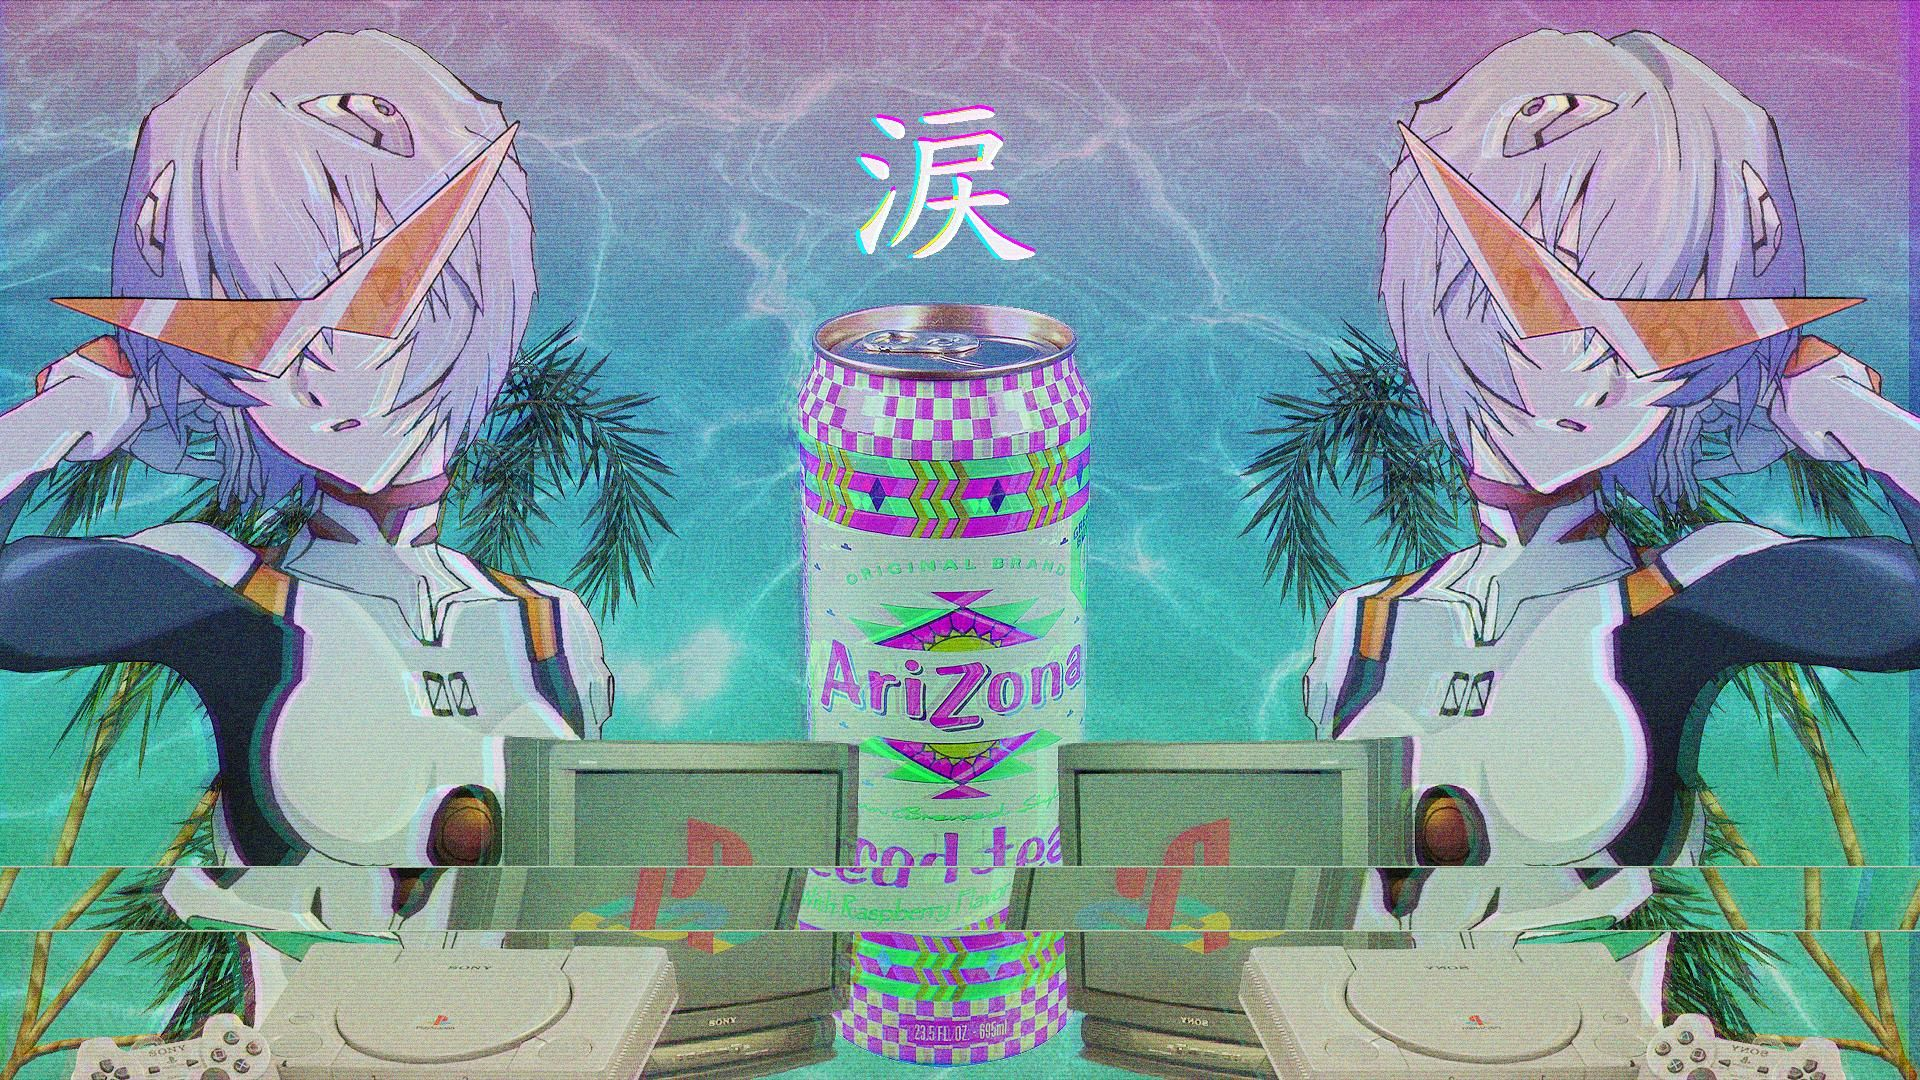 Anime Vaporwave Hd Wallpaper 1920x1080 Id 57106 Vaporwave Wallpaper Anime Wallpaper Aesthetic Anime